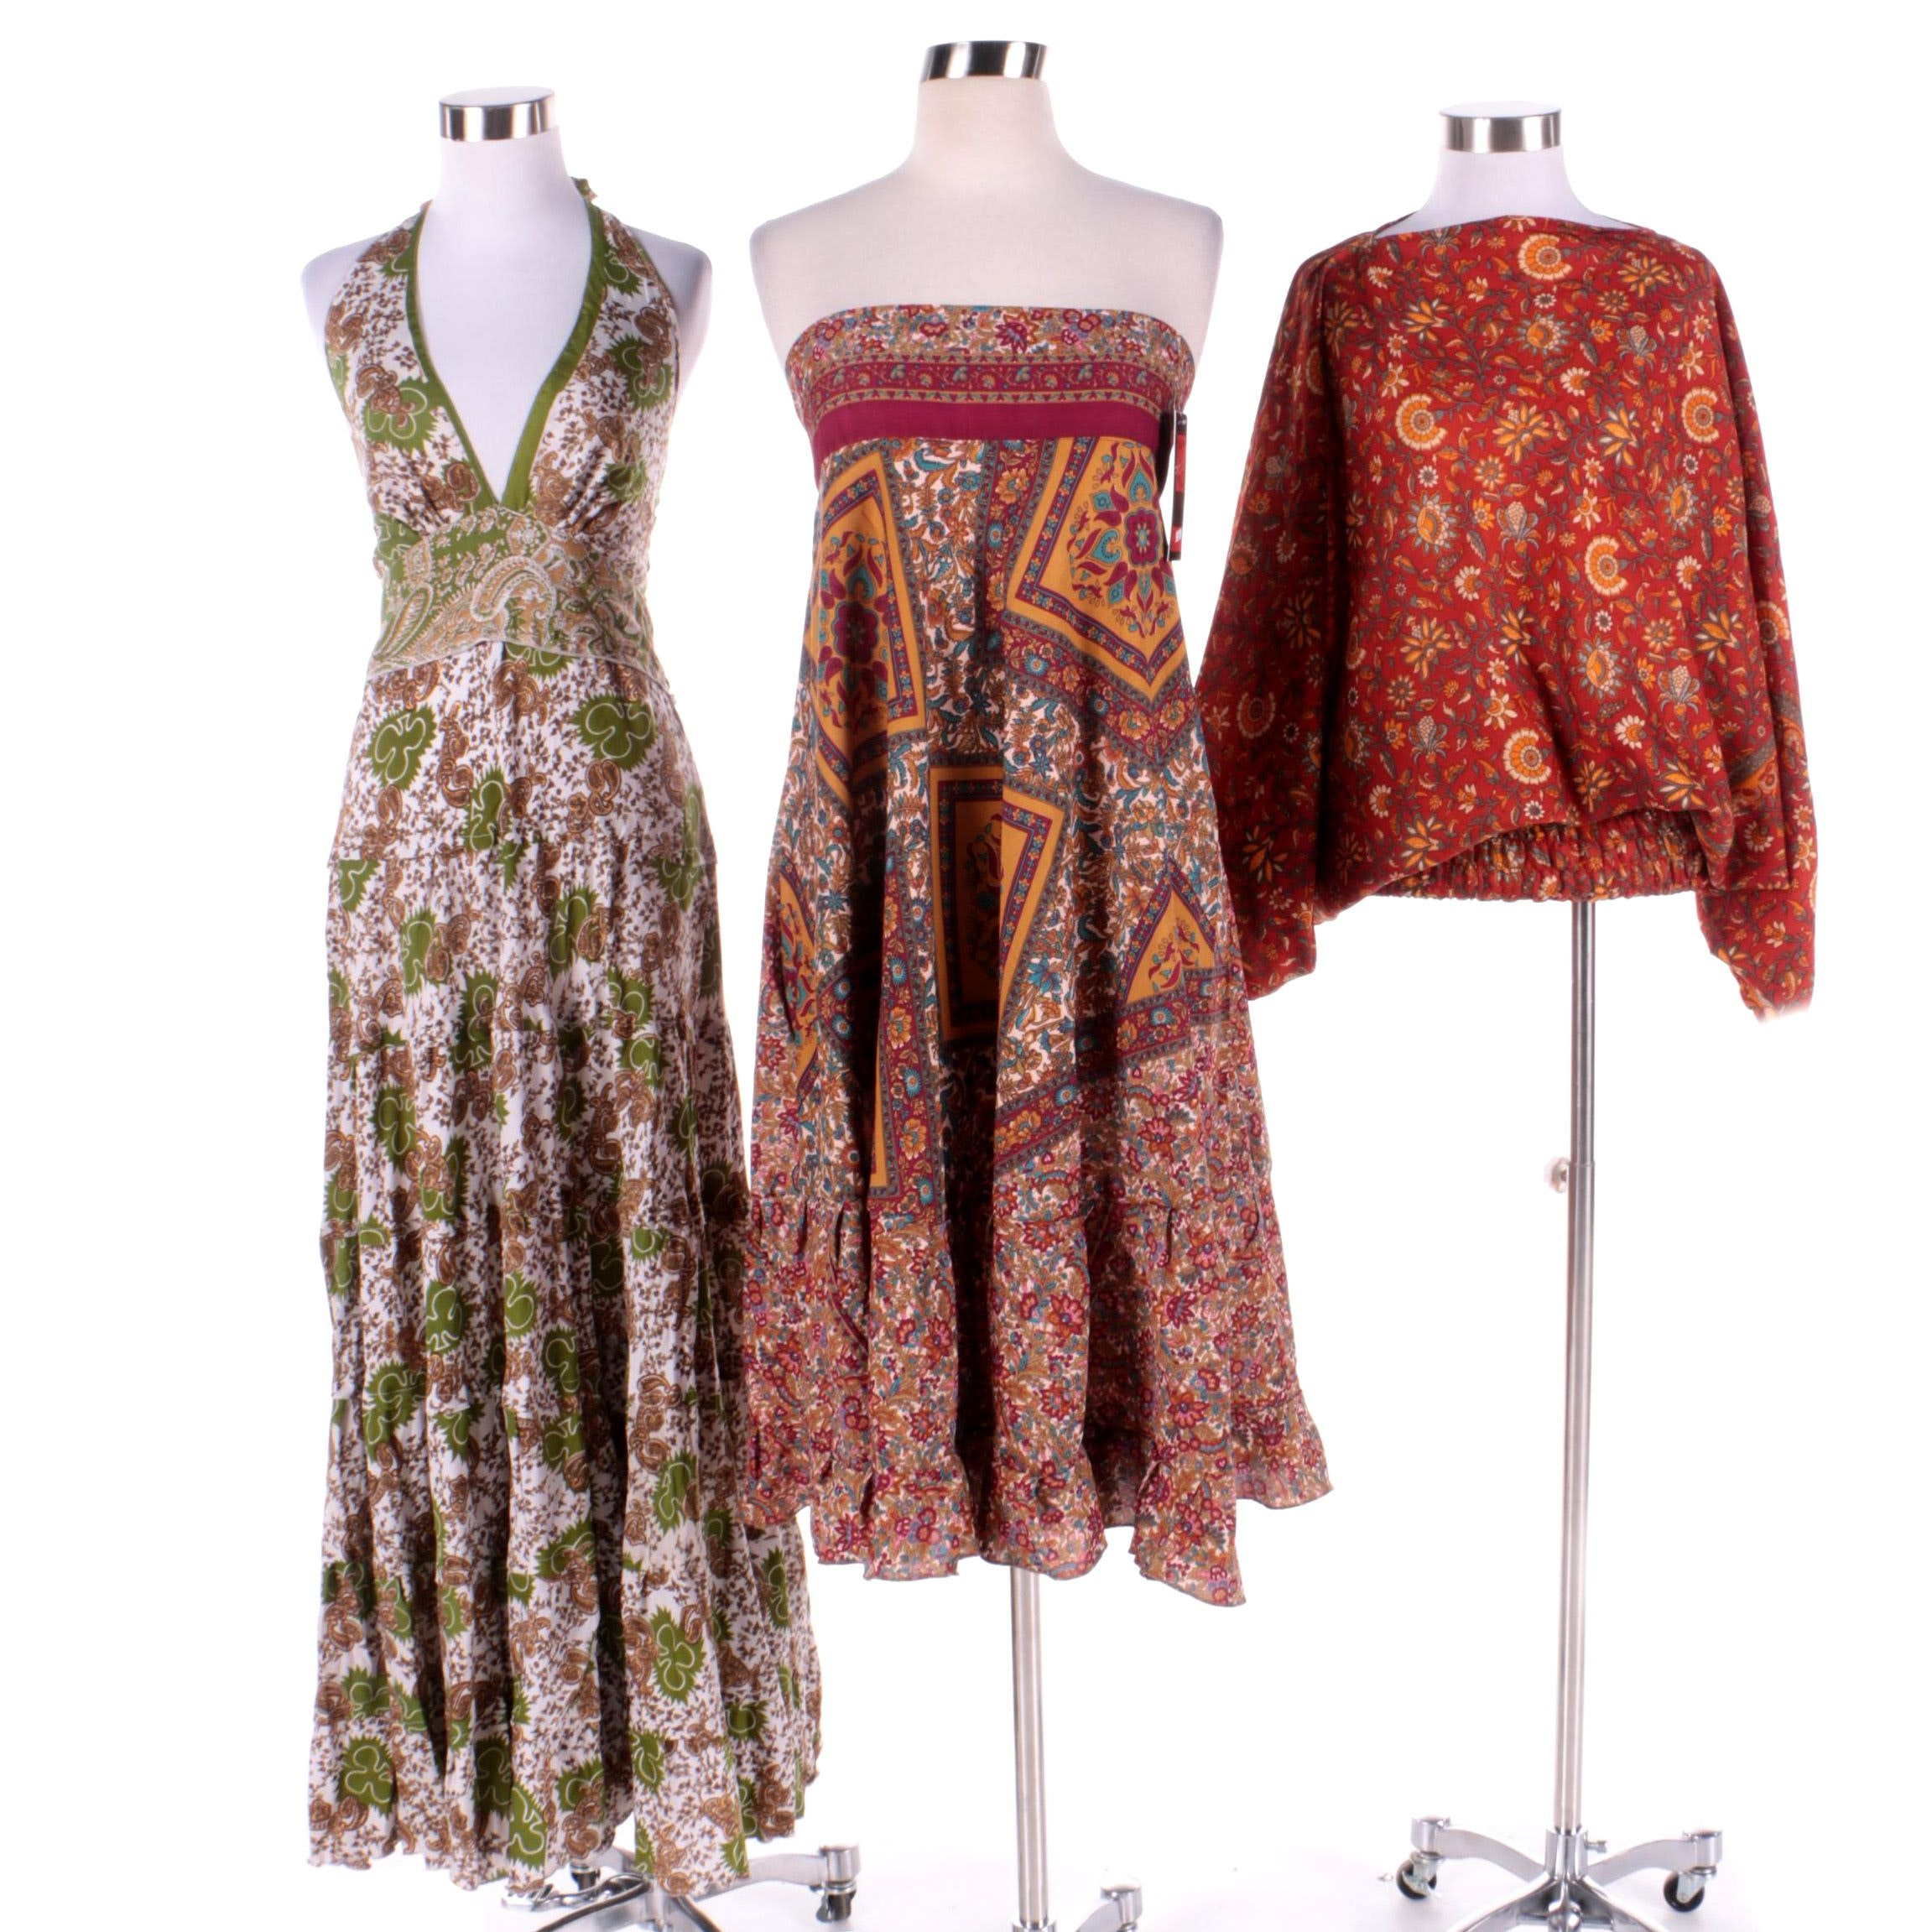 Aller Simplement Dresses and 3-in-1 Garment Made from Upcycled Vintage Saris